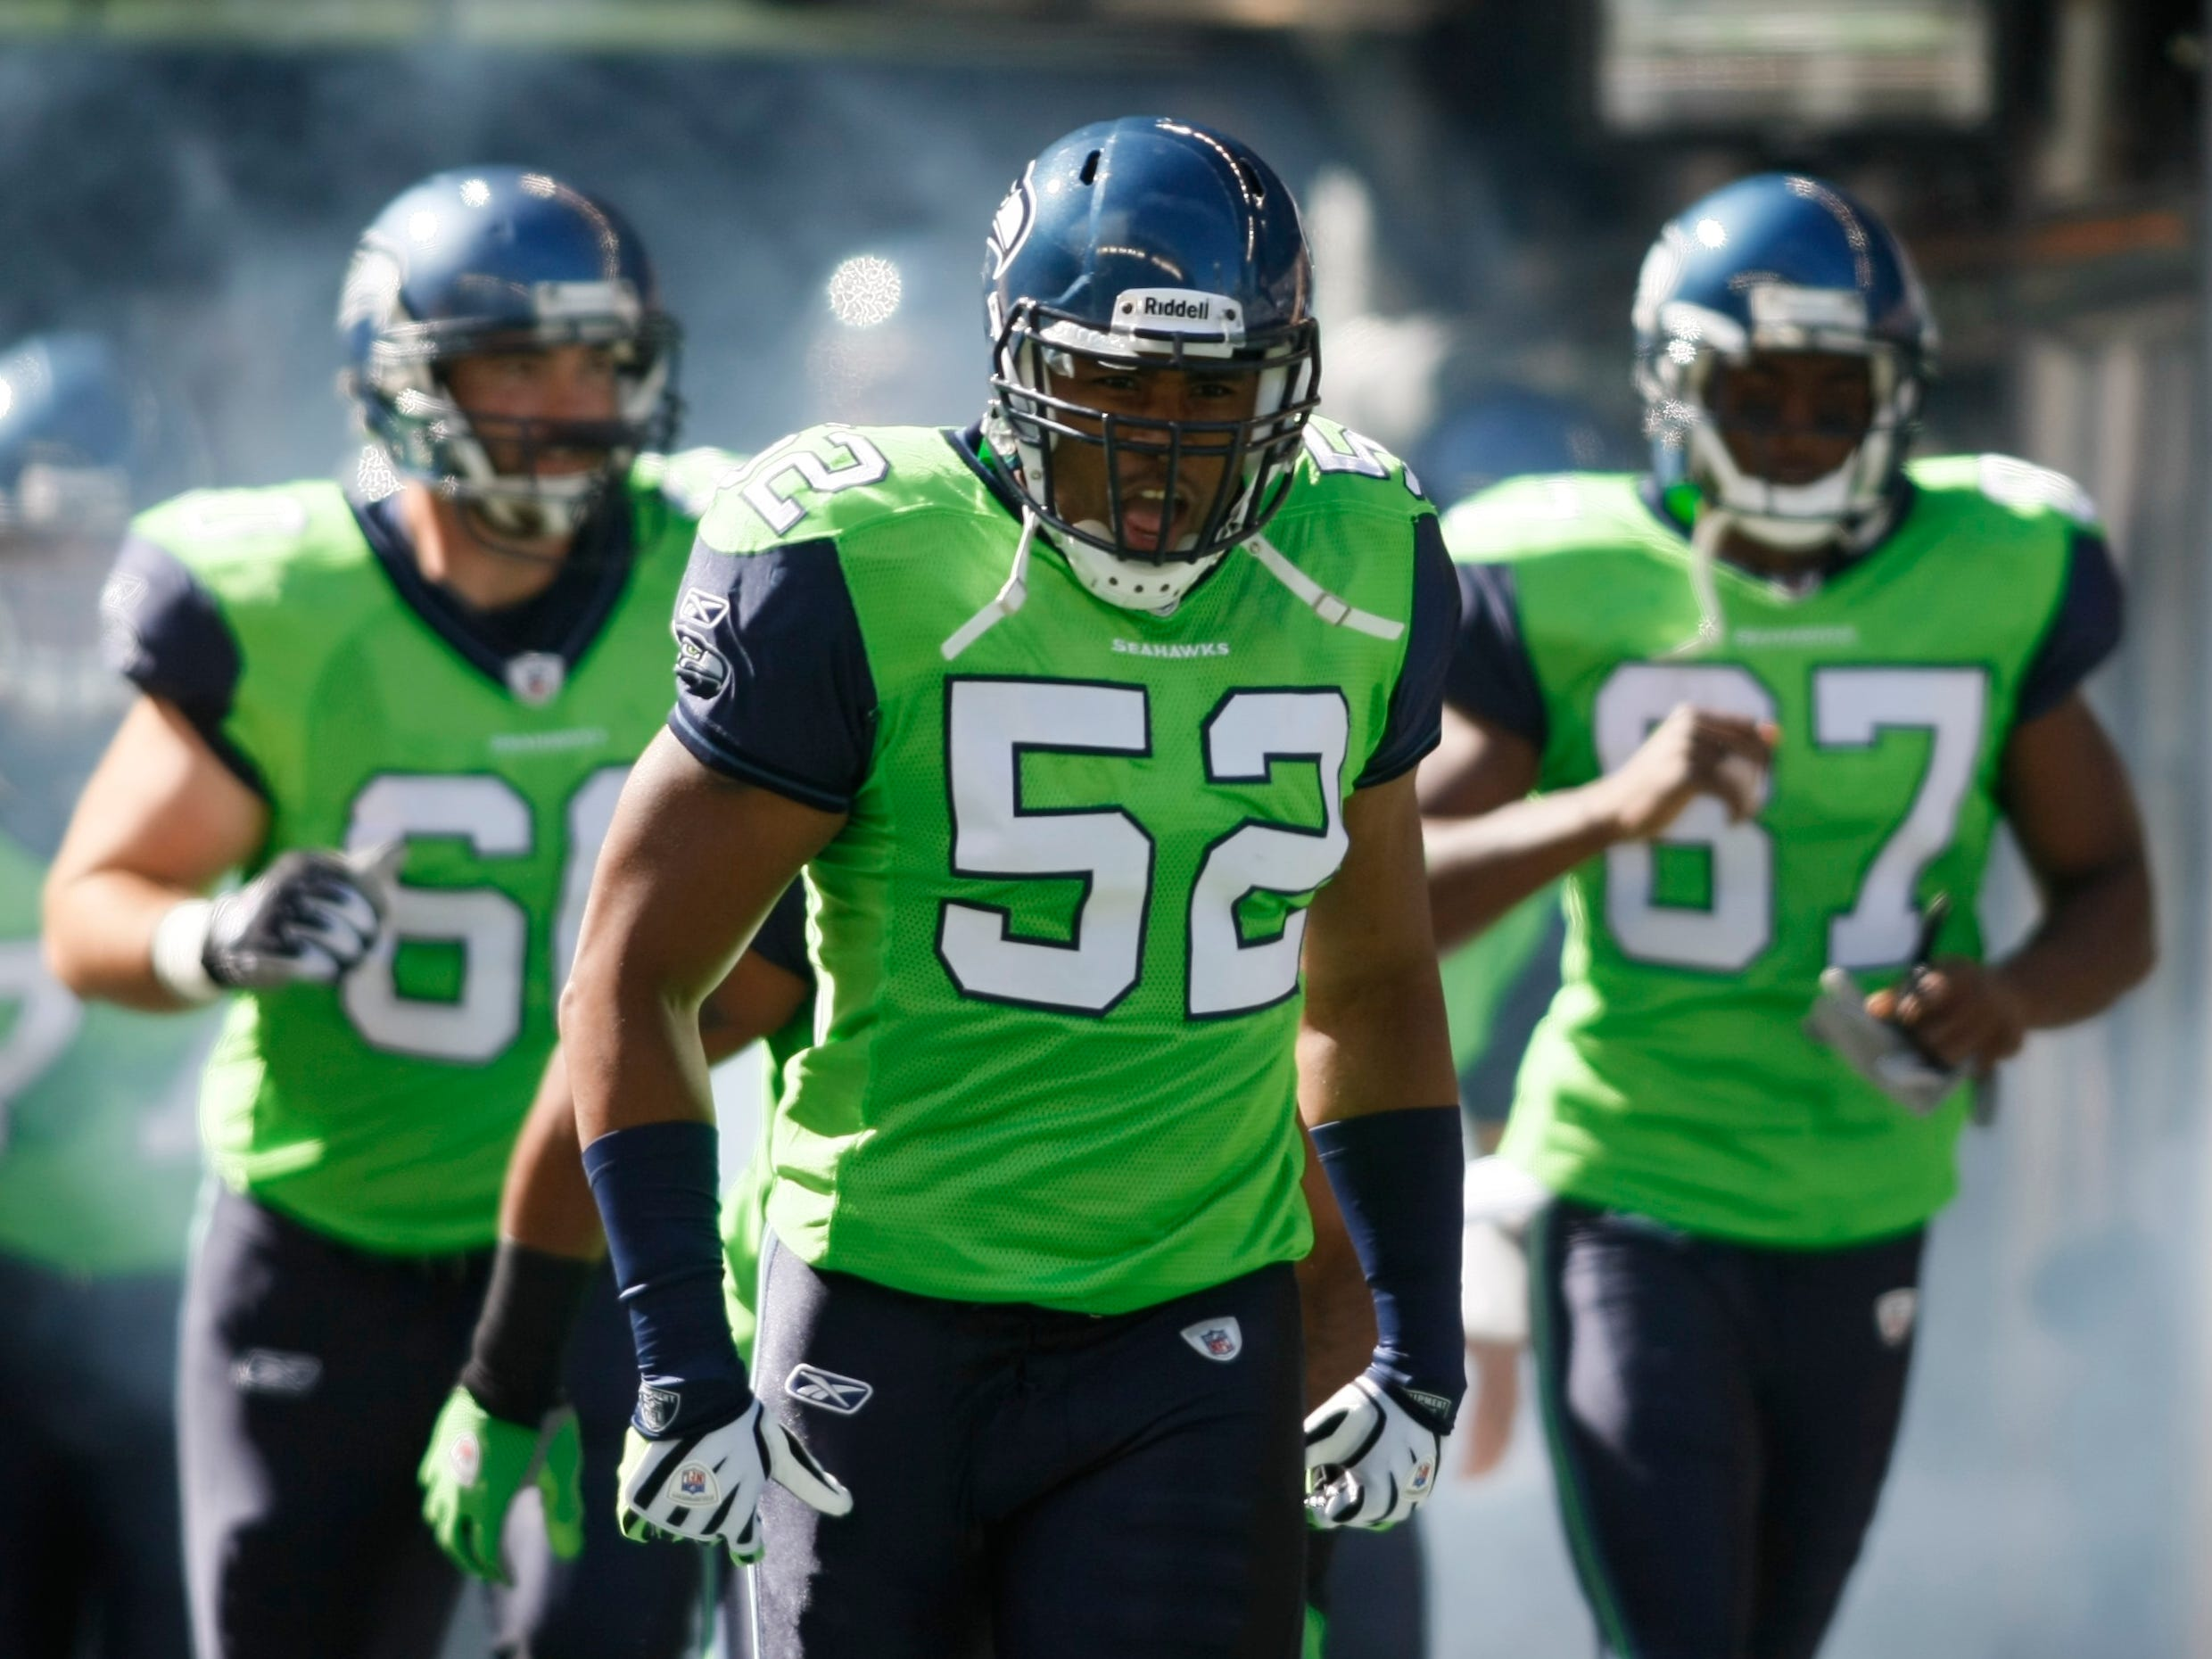 Wearing very bright green jerseys, Seahawks' D.D. Lewis (52) and teammates run onto the field in 2009.